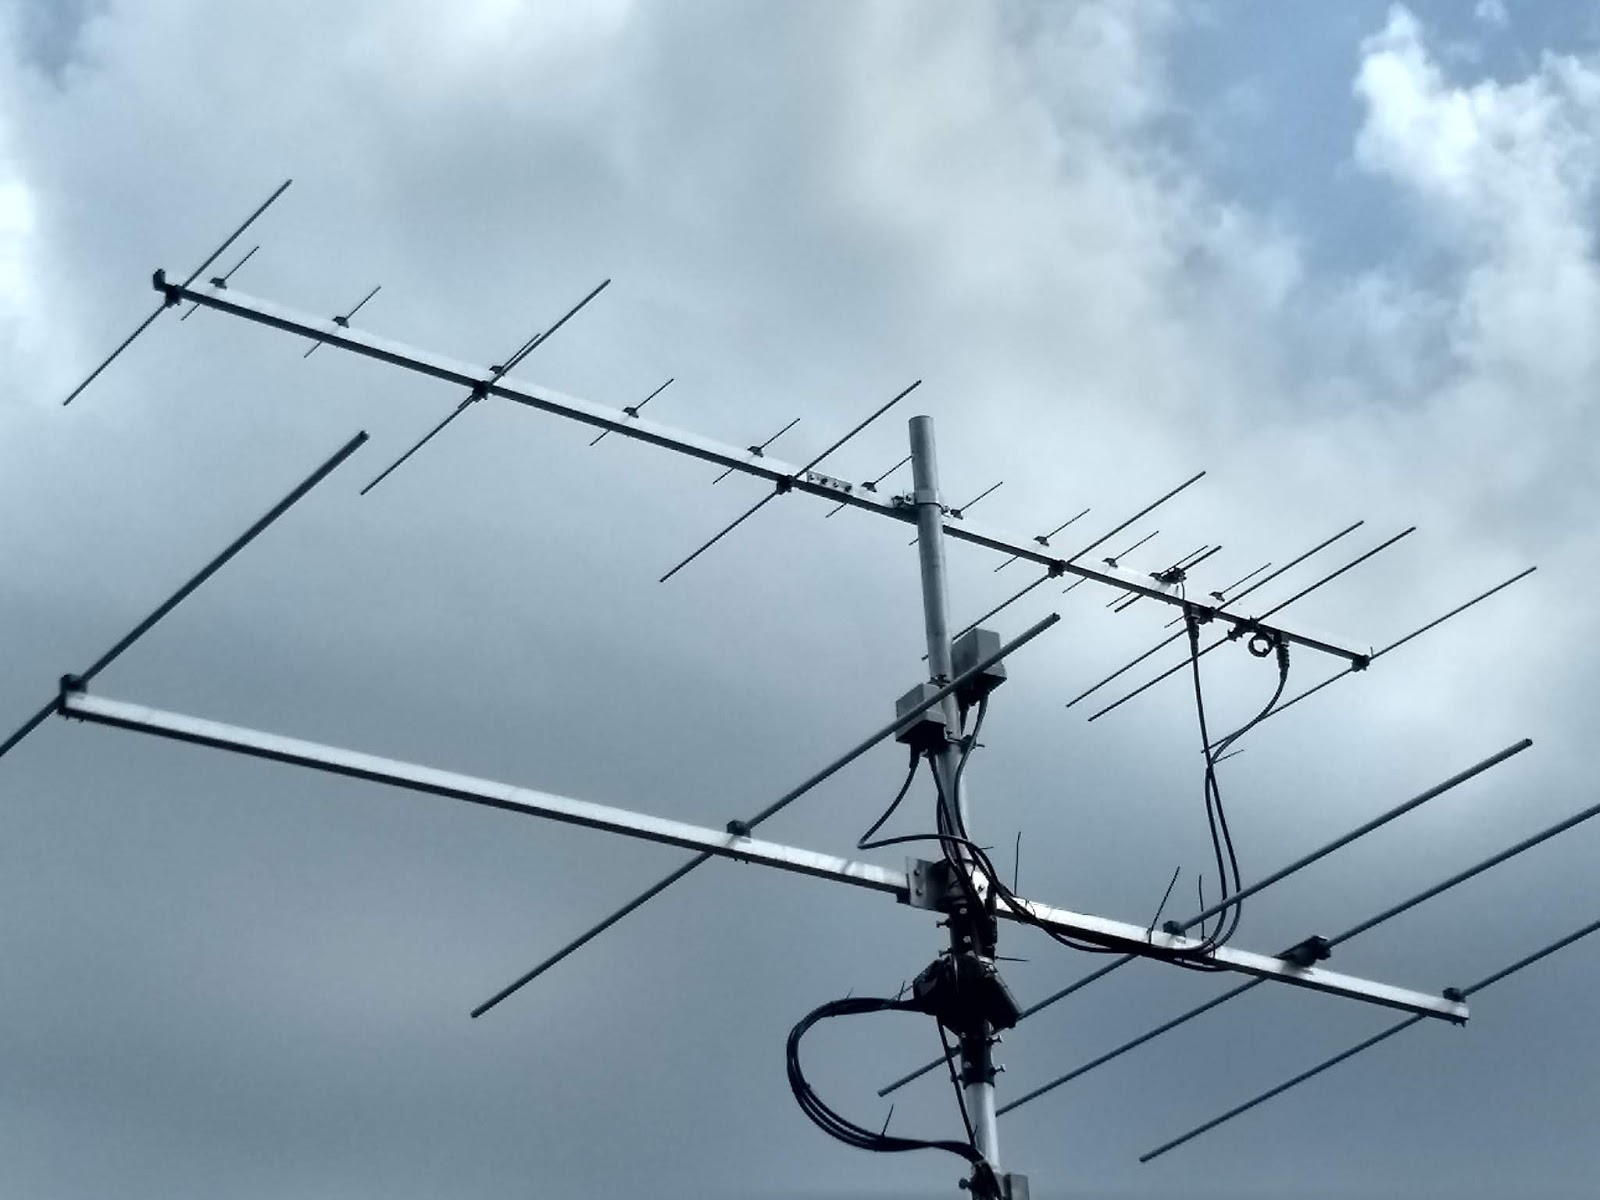 GM4FVM's radio world: 70cms, television coverage and TVI